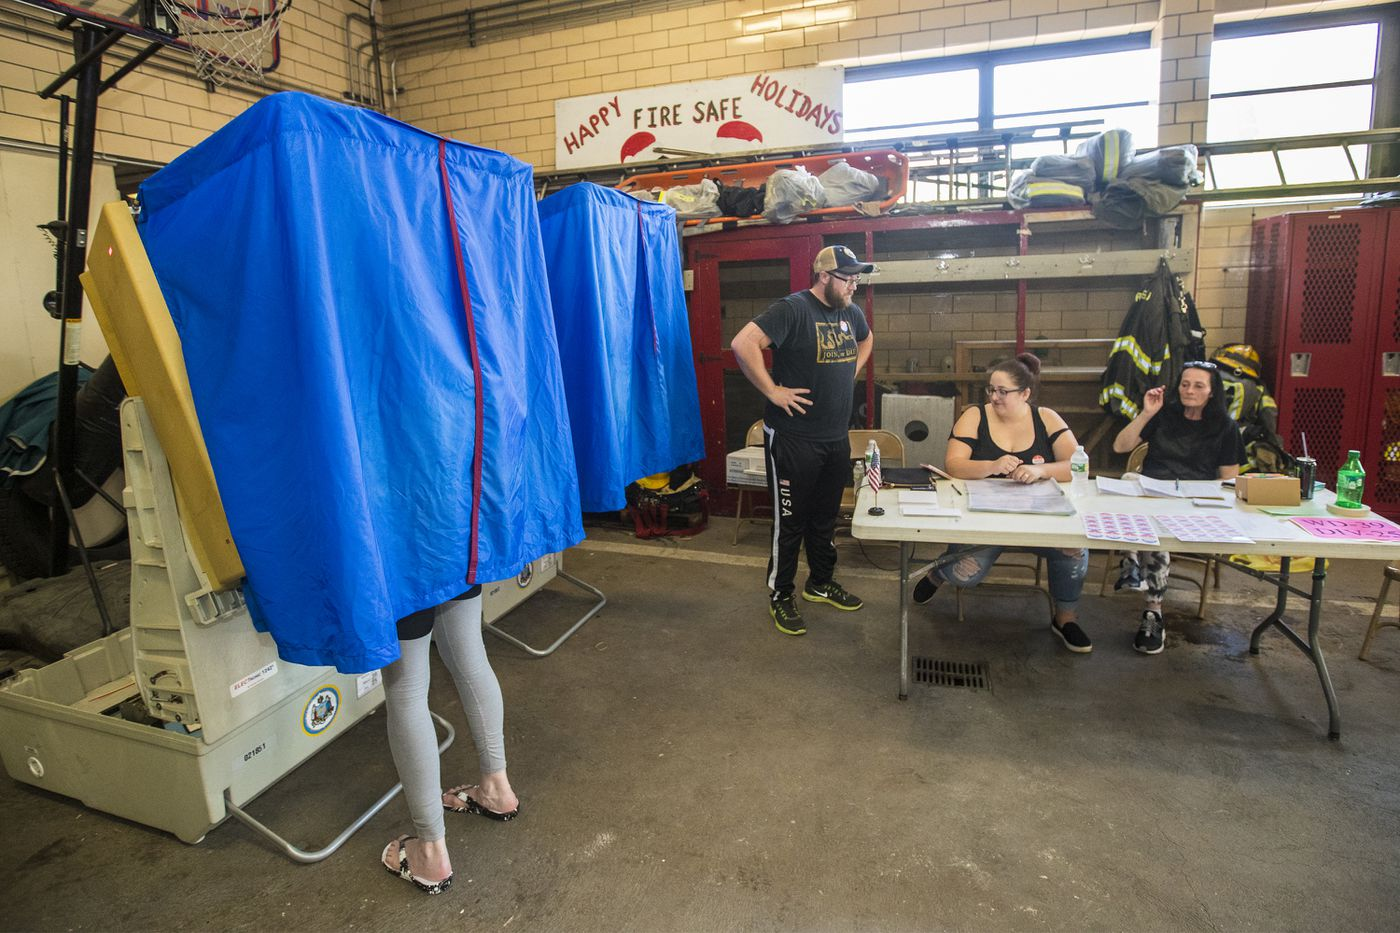 What's the holdup? Pa. needs to move all voting to mail-in ballots now | Editorial